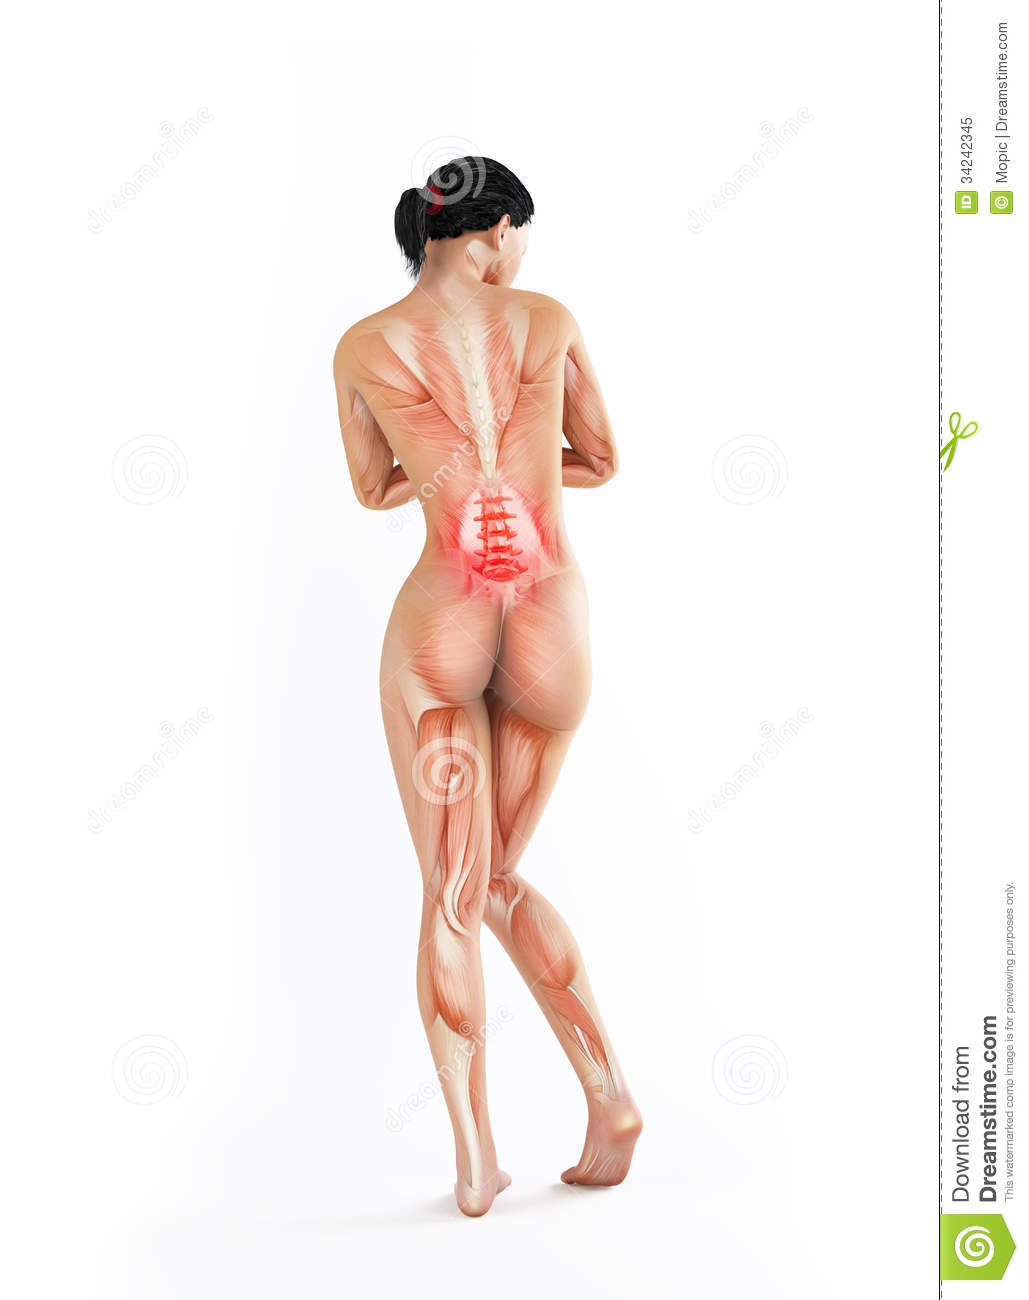 Female Anatomy - Lower Back Ache Stock Image - Image of osteoporosis ...